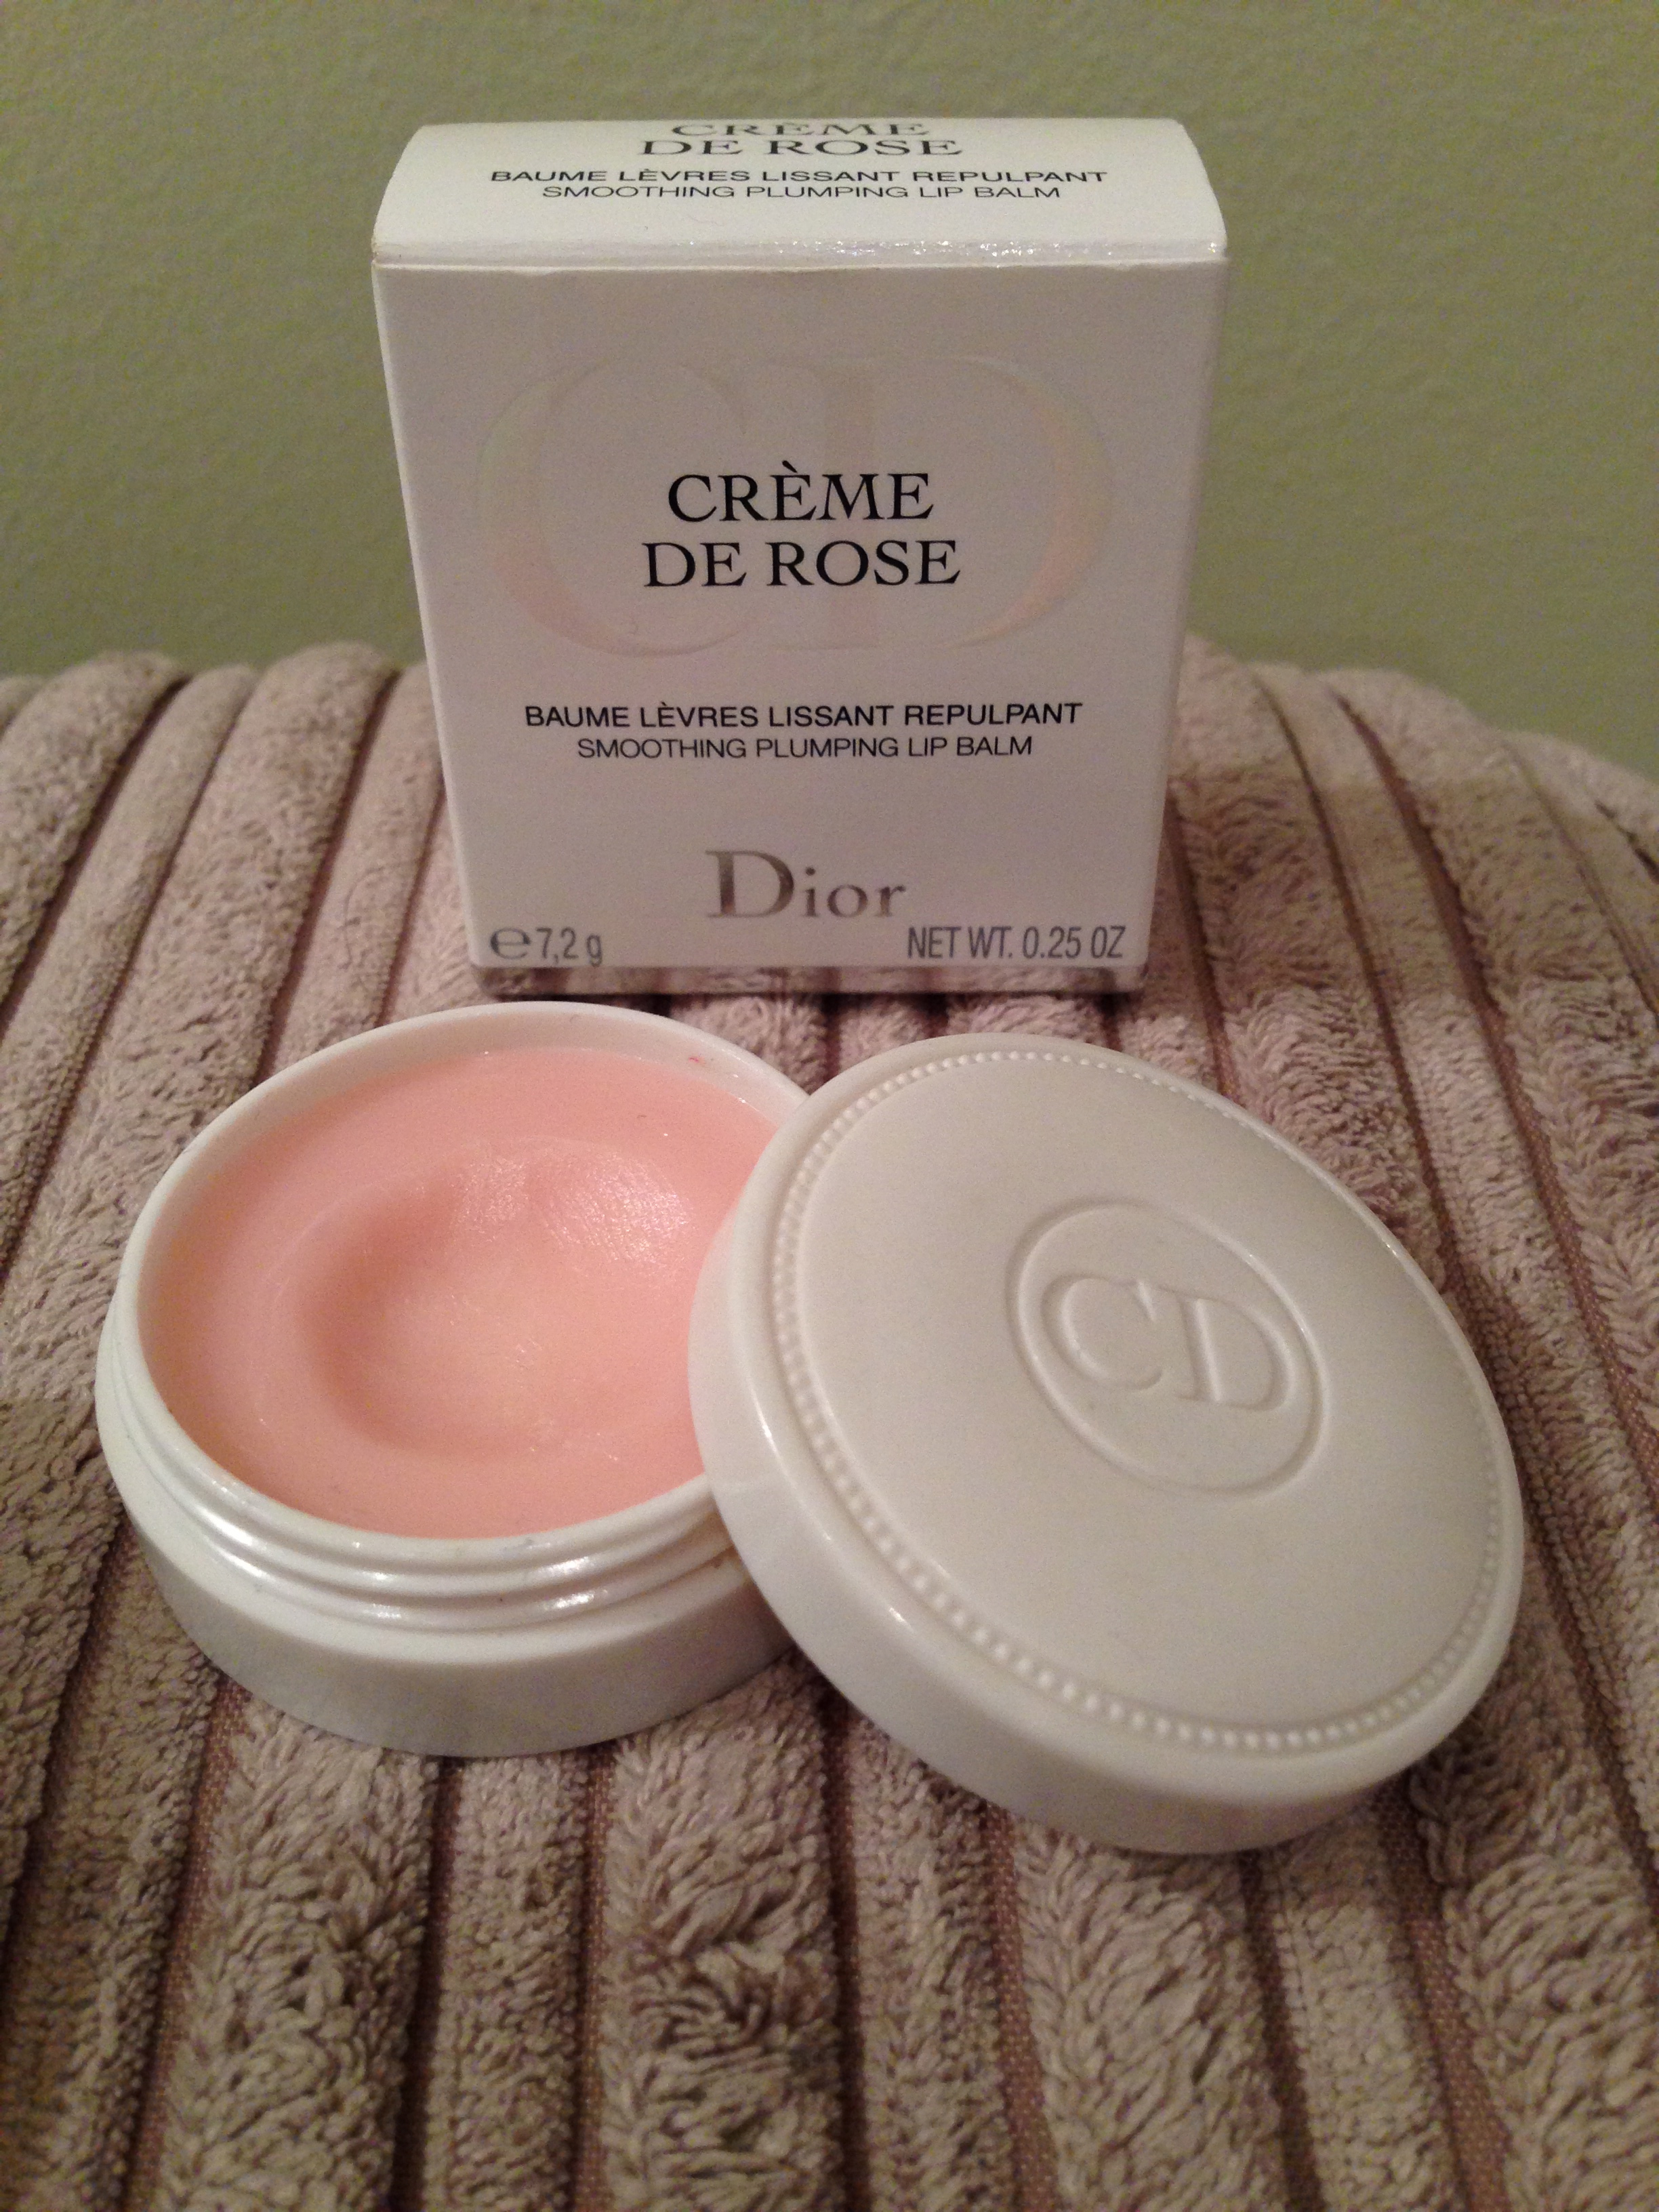 Creme De Rose Smoothing Plumping Lip Balm by Dior #18